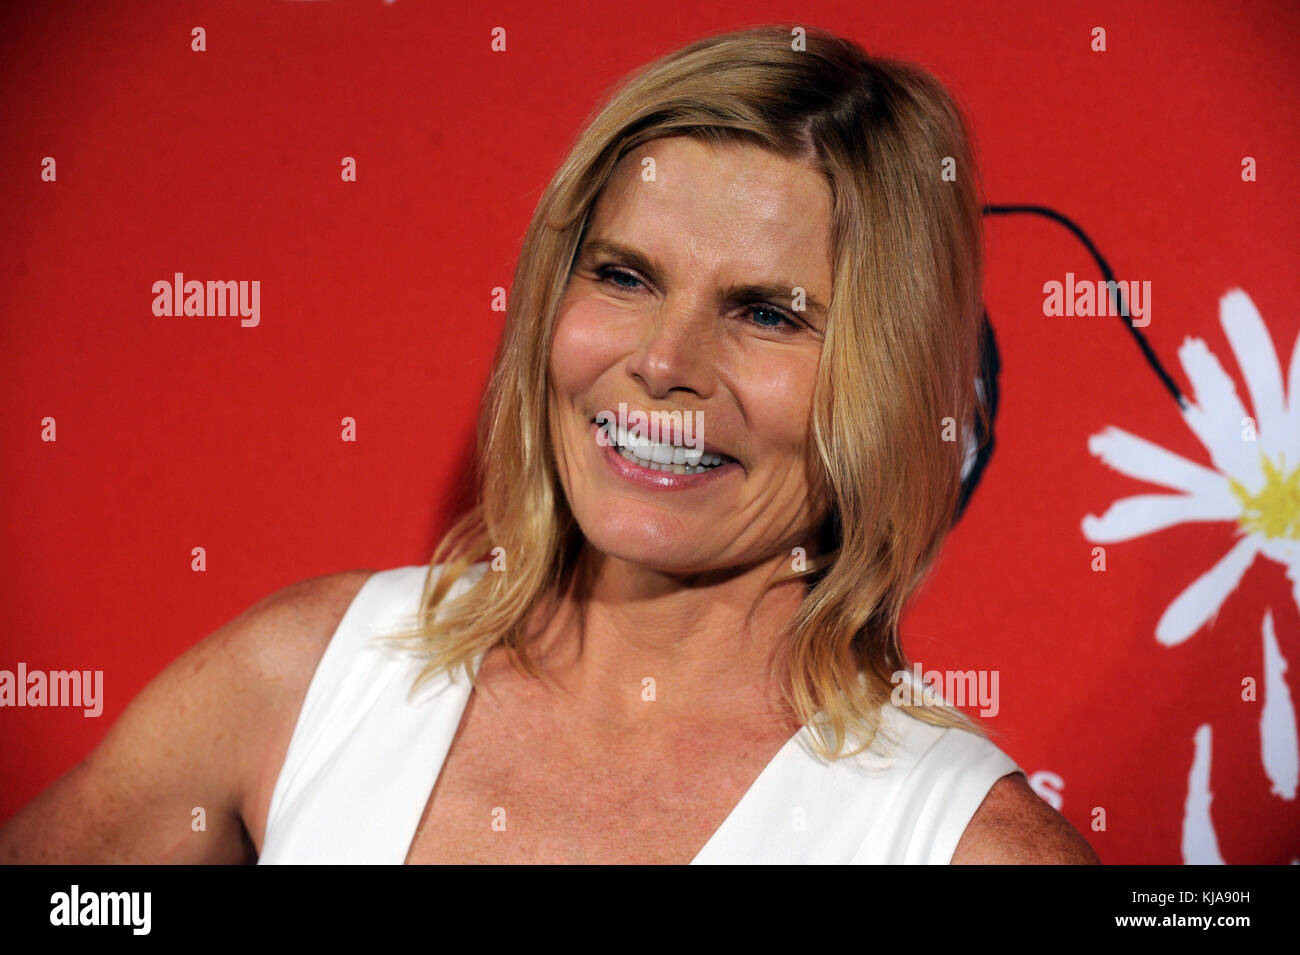 NEW YORK, NY - SEPTEMBER 15: Mariel Hemingway  attends the world premiere of 'Crisis in Six Scenes' at the Crosby Stock Photo